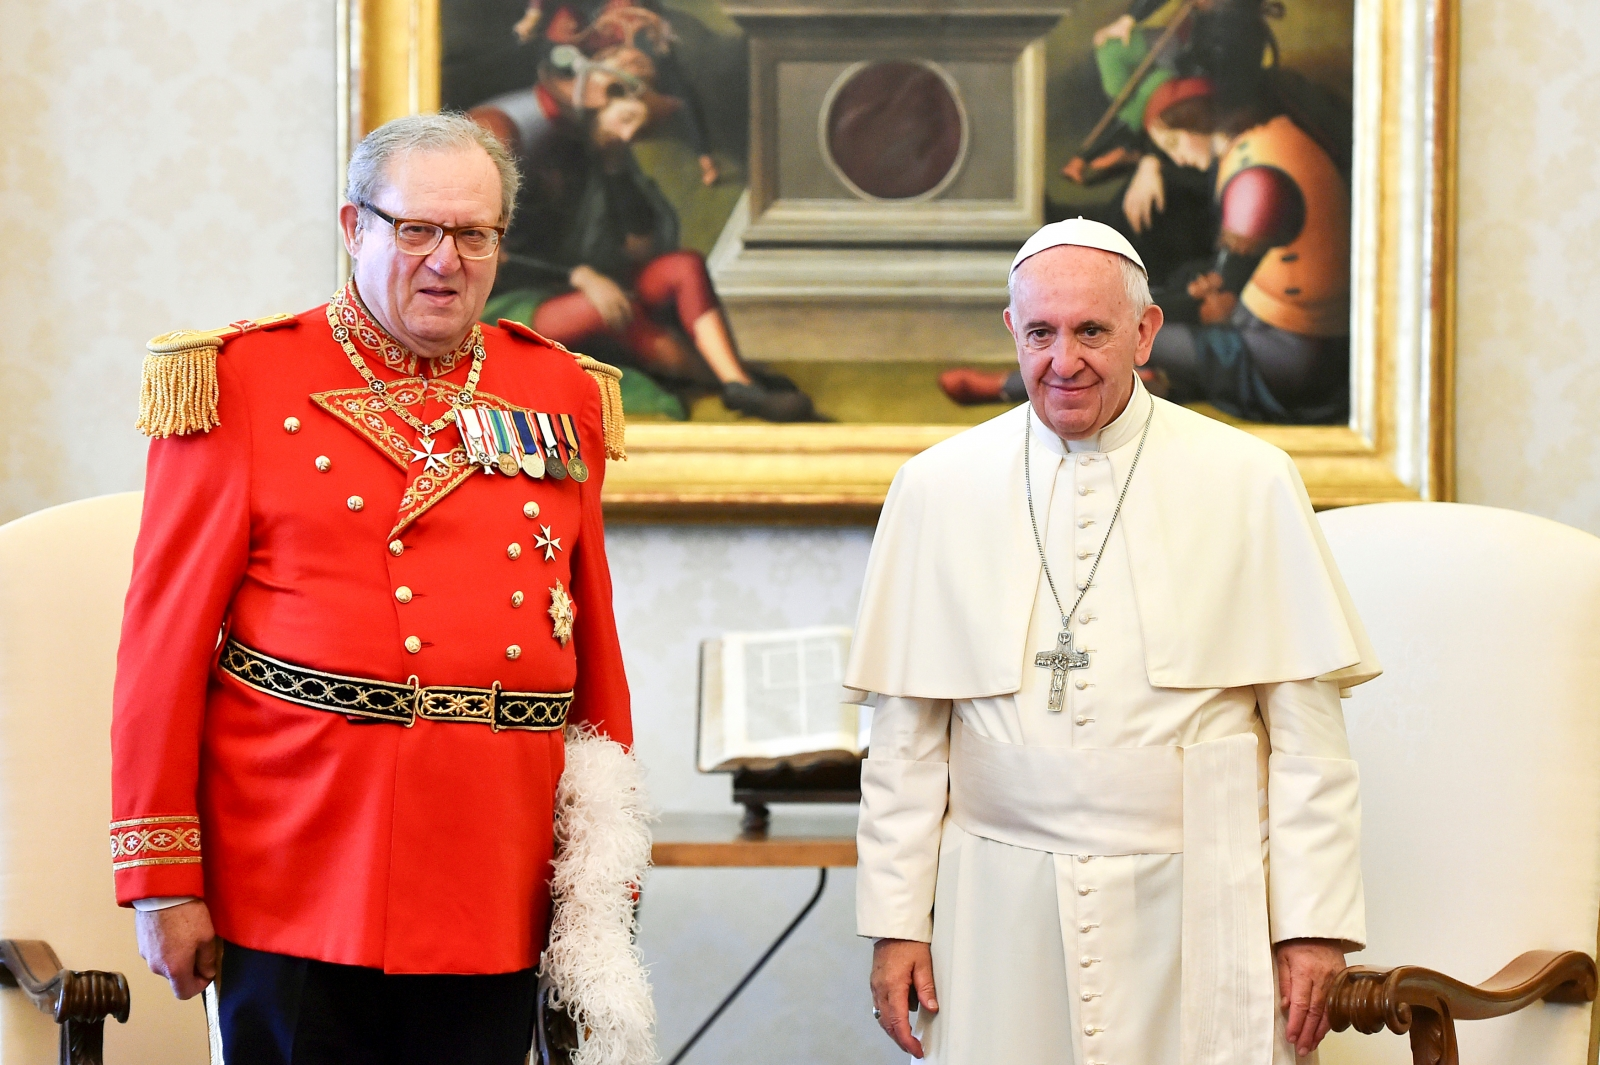 Grand Master of the Order of Malta Resigns